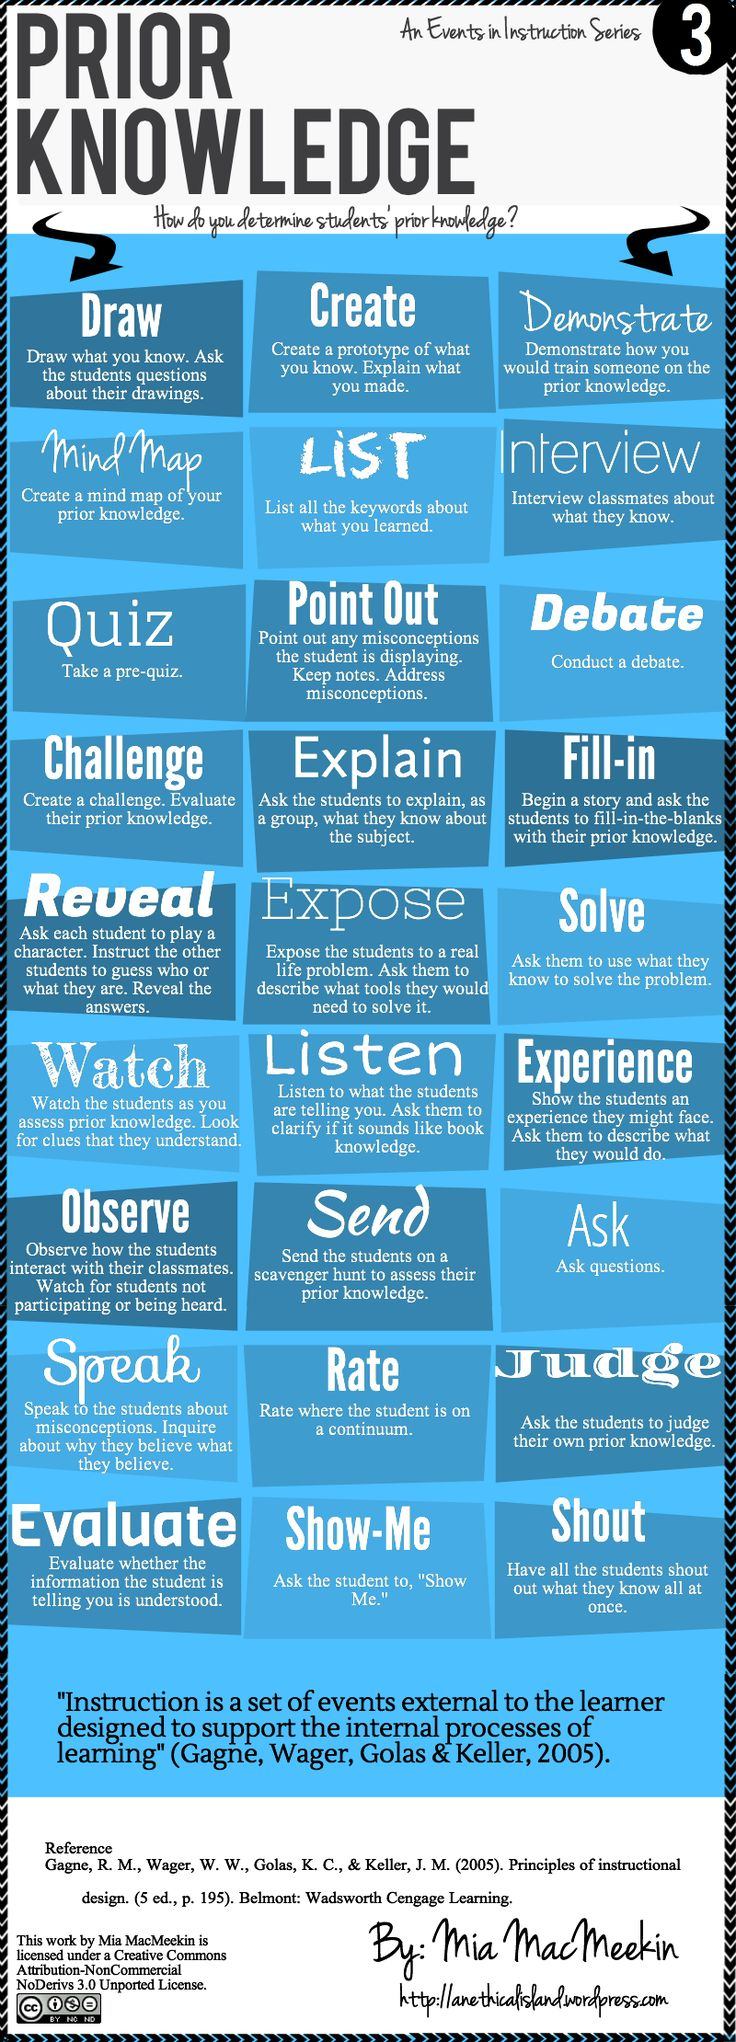 Here's an infographic on ways to activate prior knowledge.